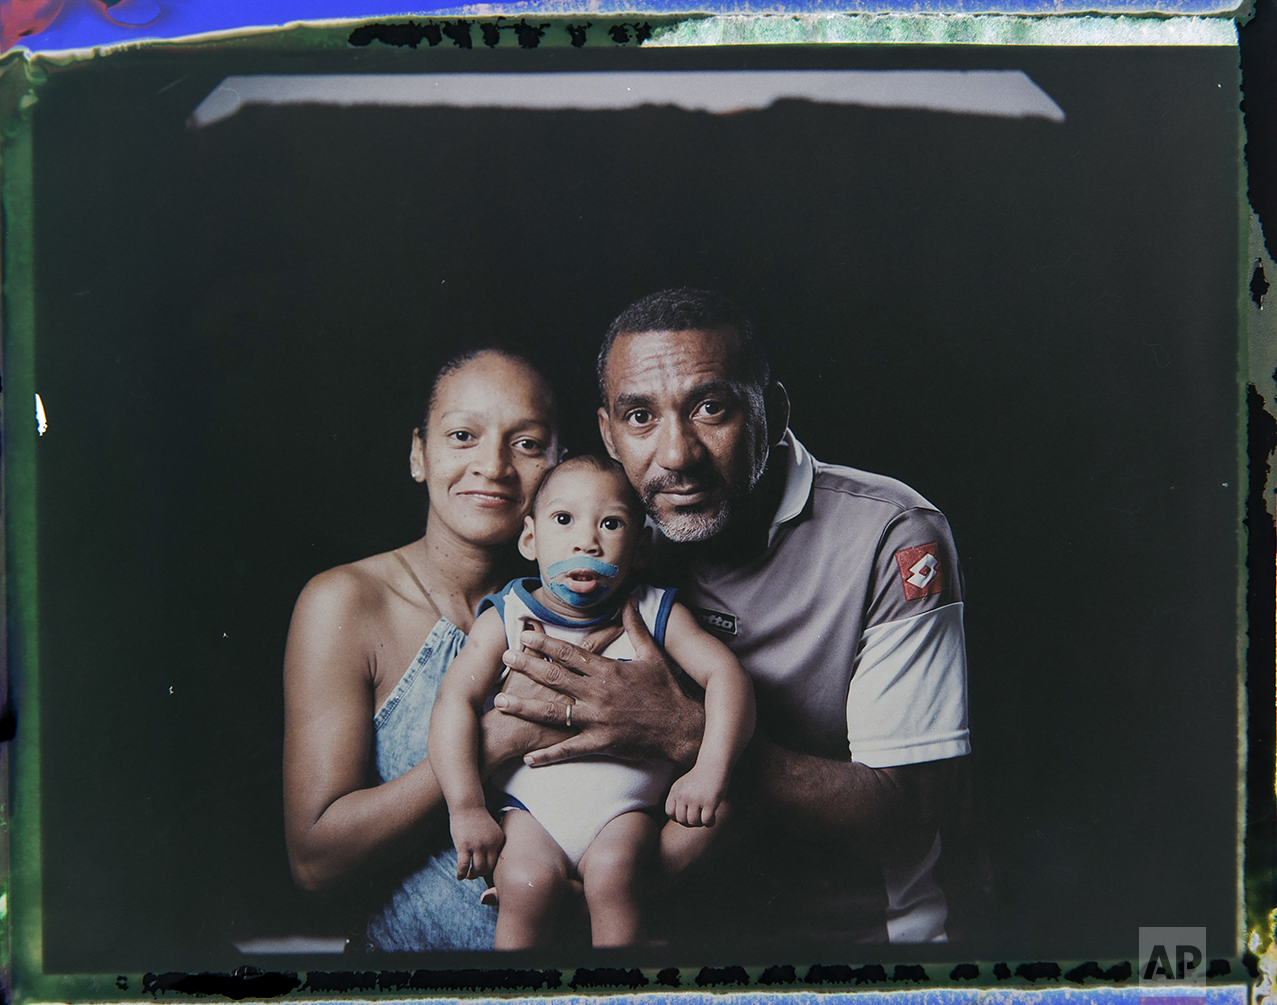 In this Sept. 29, 2016 photo made from a negative recovered from instant film, Diana Felix and Carlos Alberto Dias, pose with their son, Ezequiel, who was born with microcephaly, one of many serious medical problems that can be caused by congenital Zika syndrome, in Recife, Pernambuco state, Brazil. Dias stopped working to help Felix care for their four children. Sometimes he accompanies her to Ezequiel's therapy sessions and medical appointments, which can be as often as five times a week. (AP Photo/Felipe Dana)